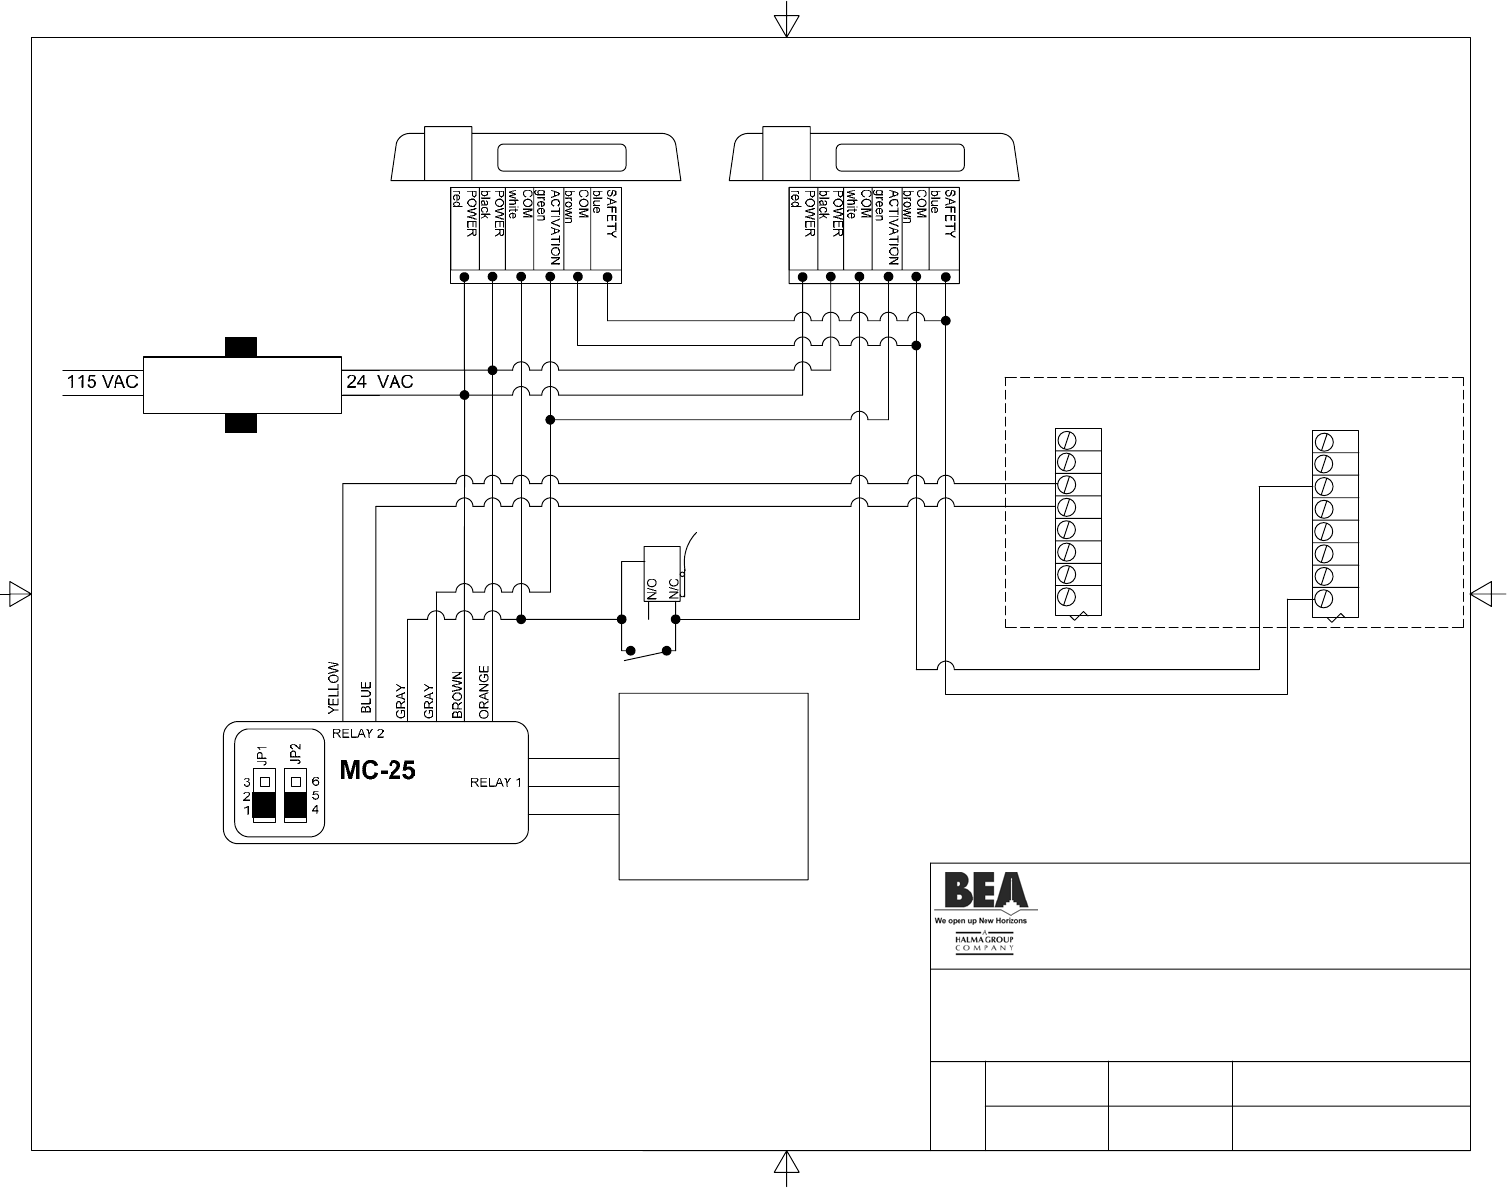 ca647ff3 1322 44d5 afd2 be5728ca6bf1 bg1 bea door dip switch i user guide manualsonline com stanley dura glide wiring diagram at crackthecode.co